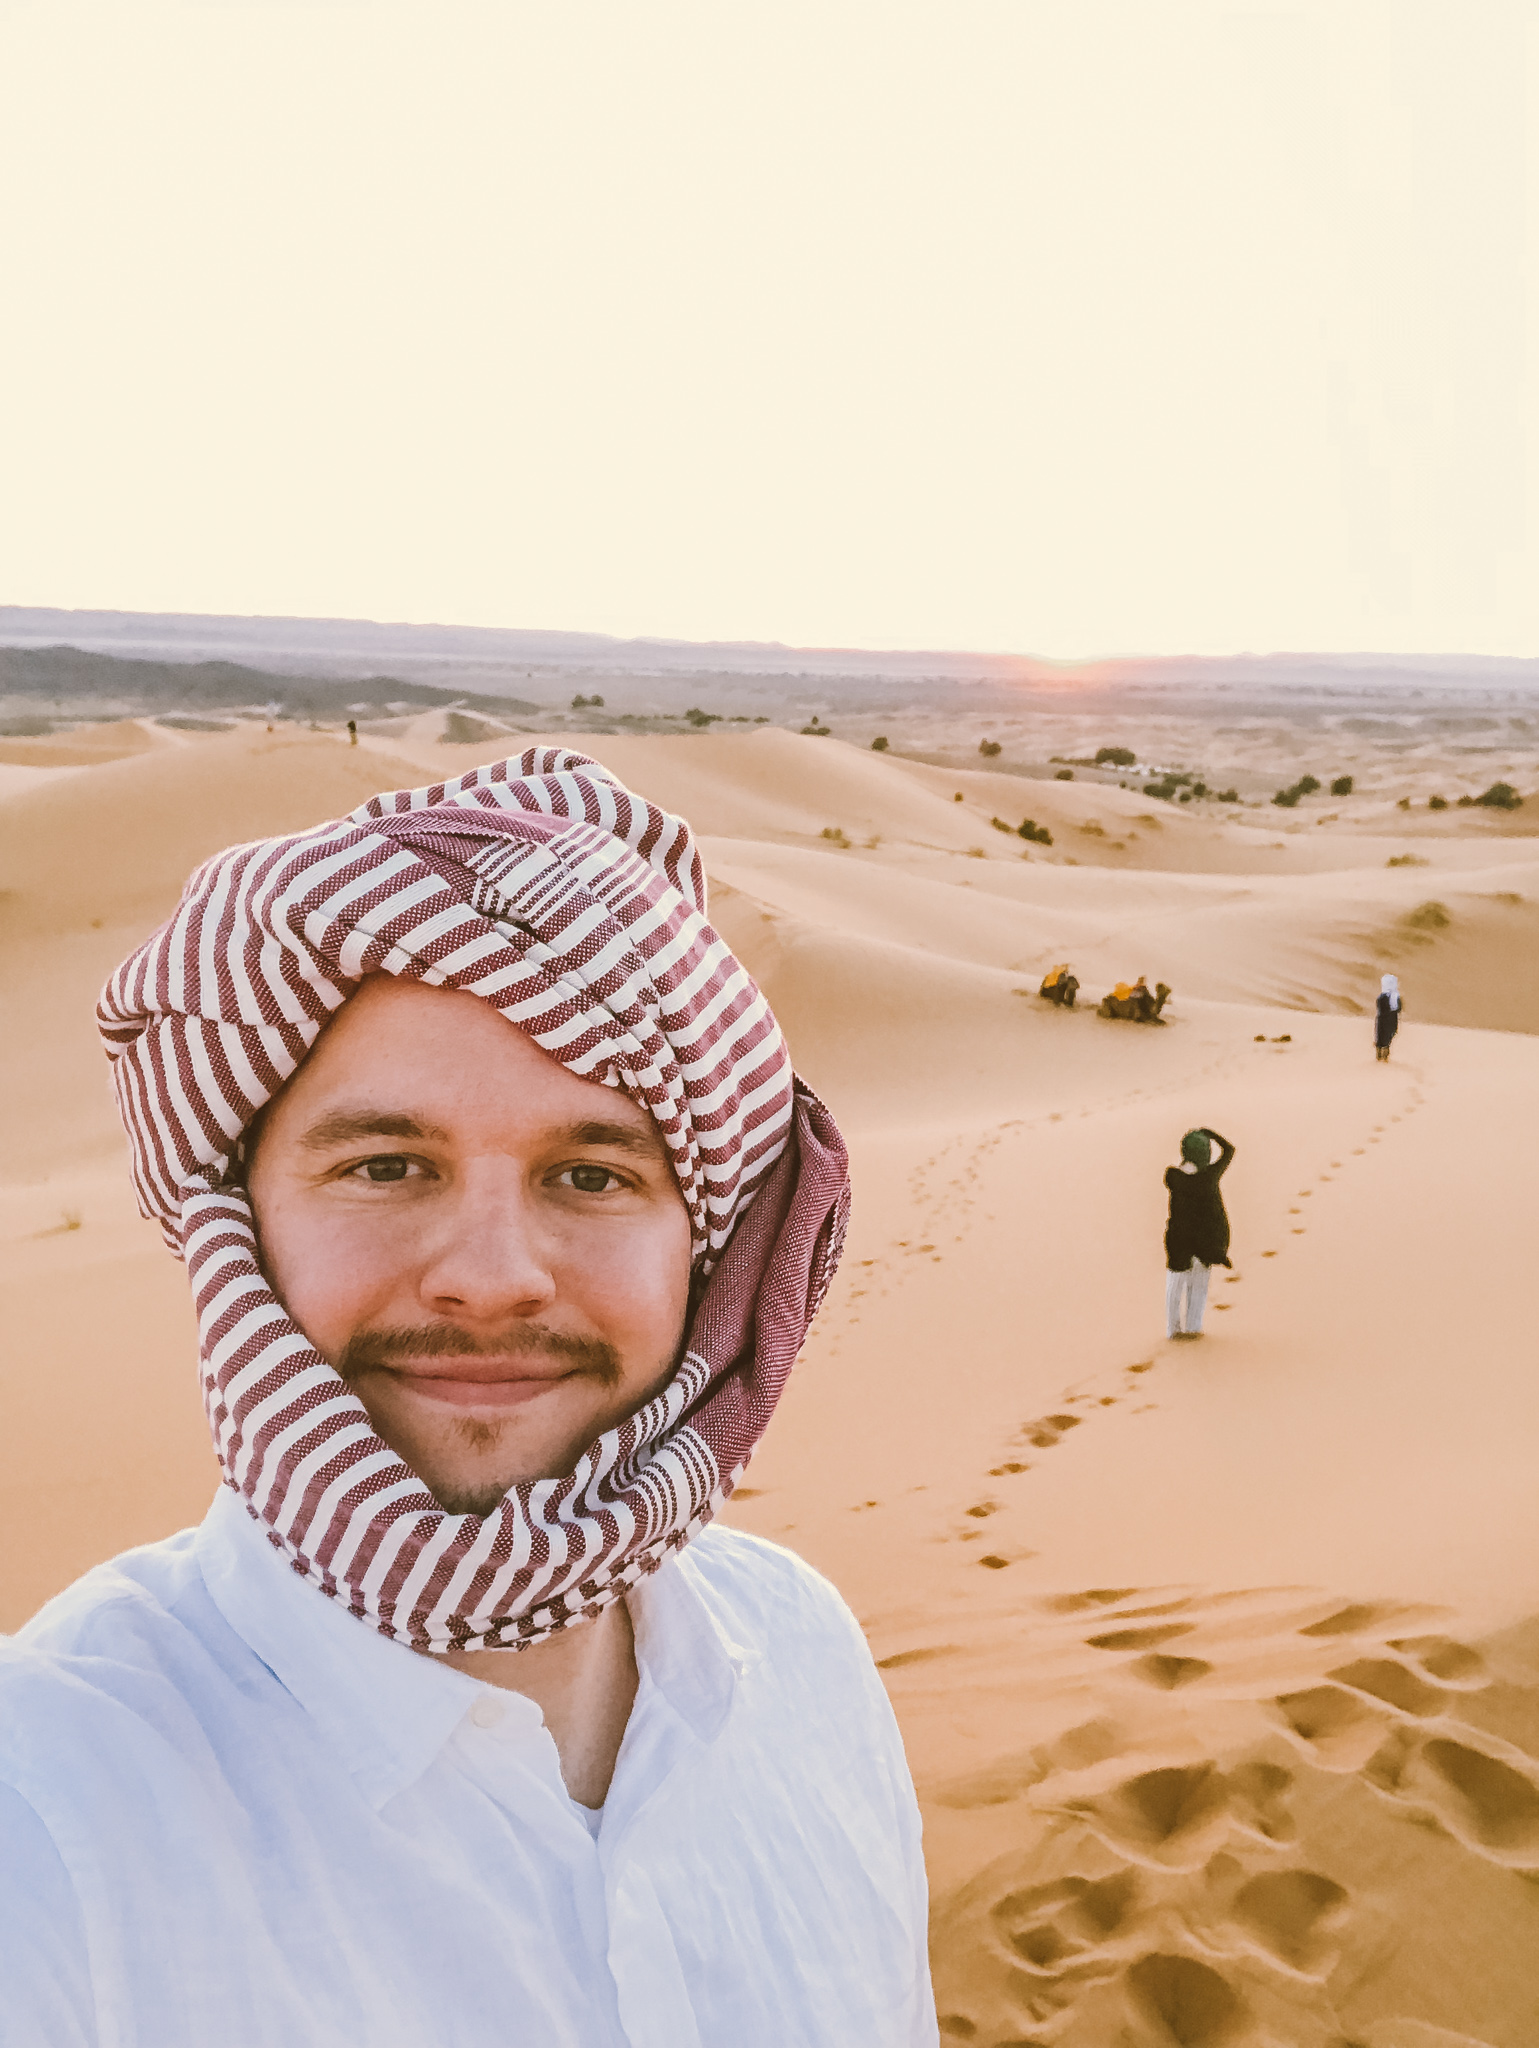 3 Day Sahara Desert Trip from Marrakech- Monique McHugh Blog